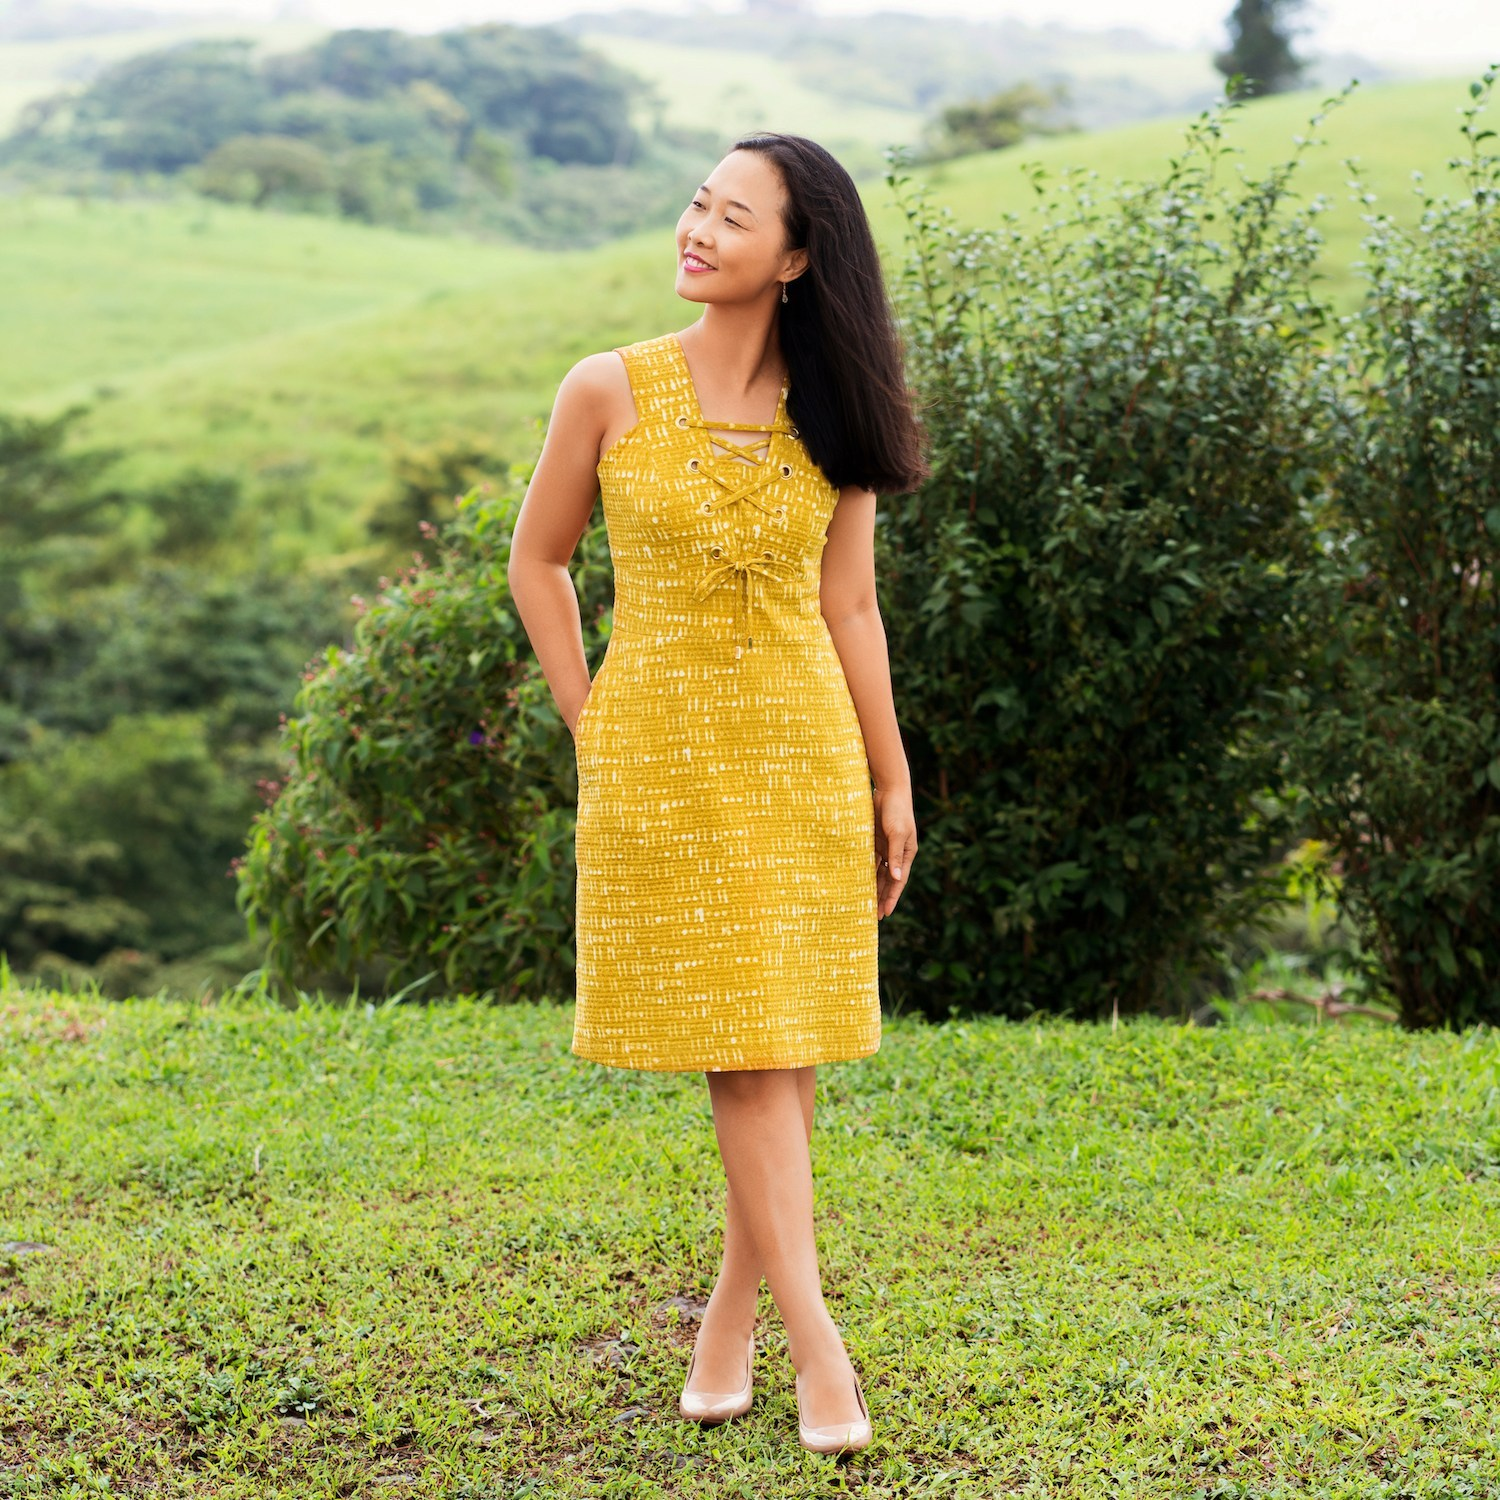 Oia Dress sewing pattern by Itch to Stitch